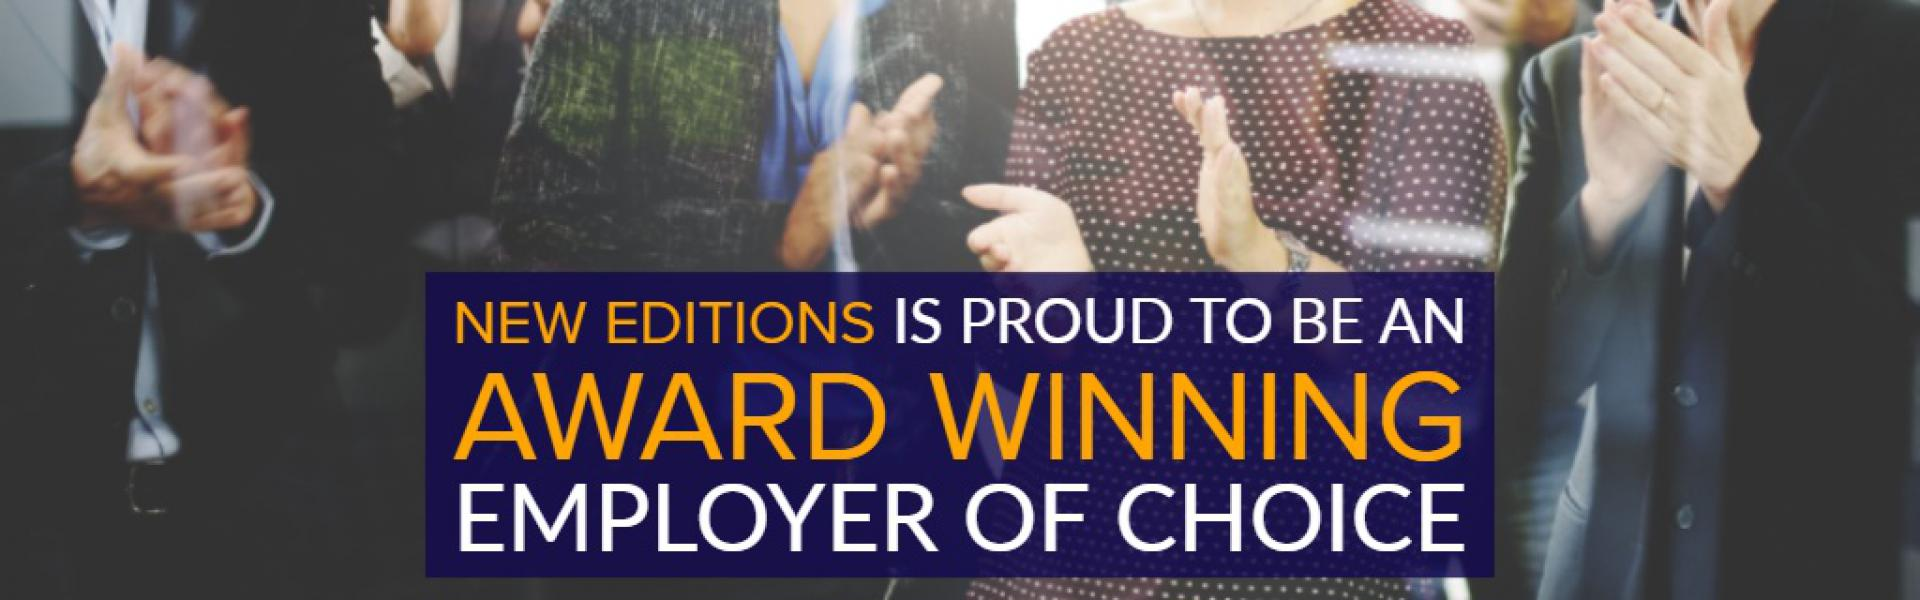 New Editions is proud to be an award-winning employer of choice.